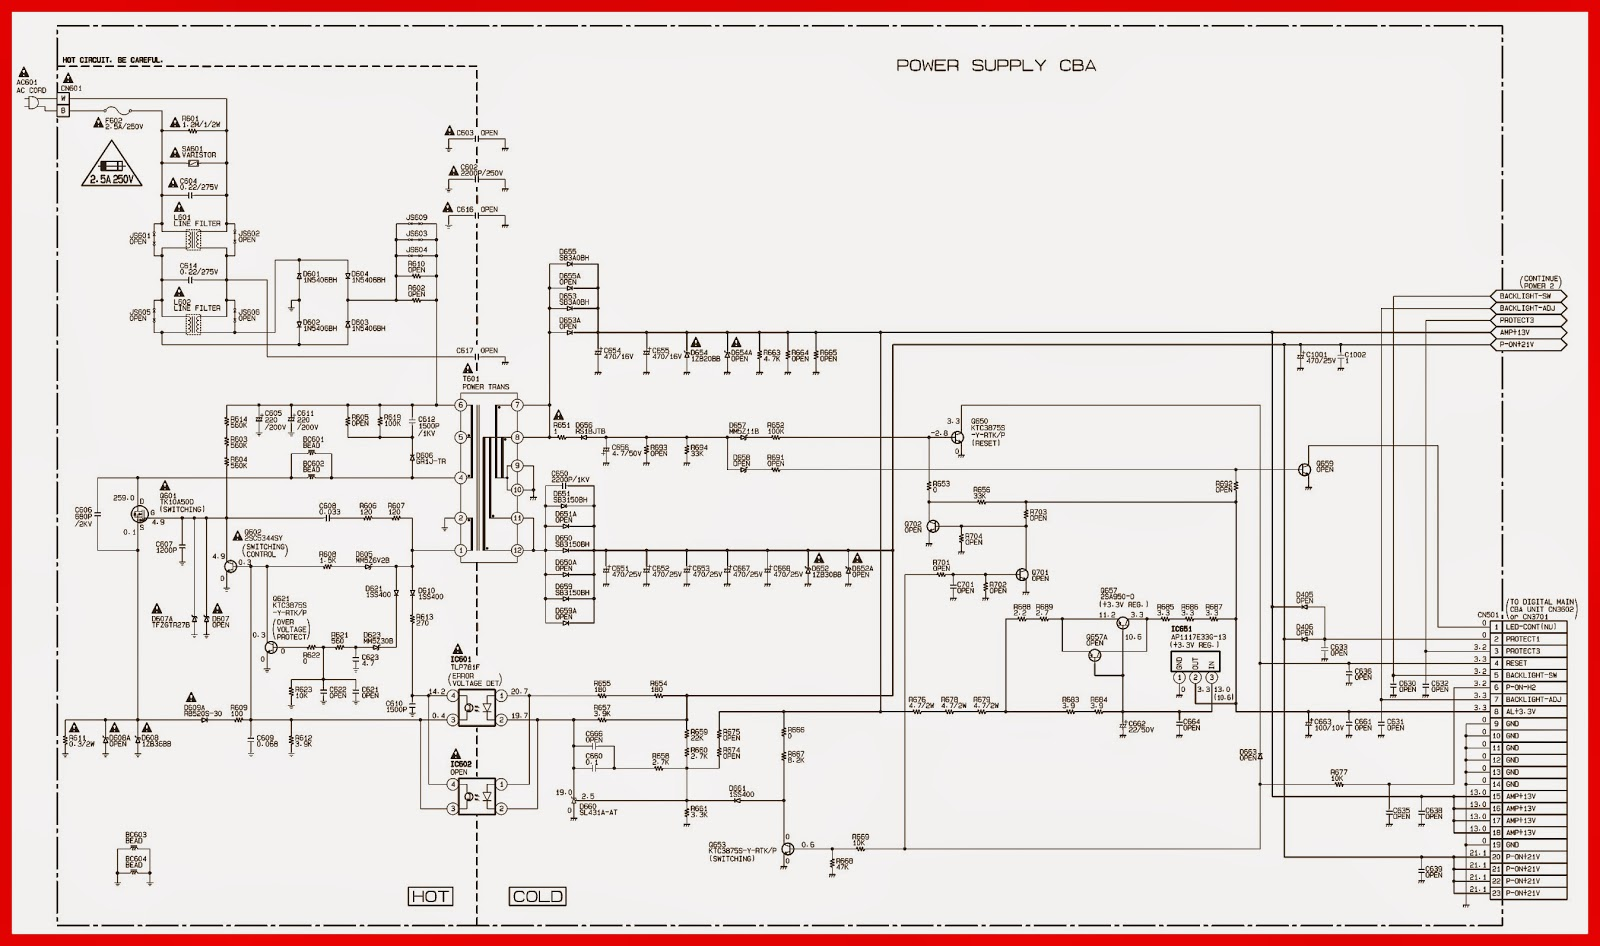 Magnavox Lcd Tv Wiring Diagram Diy Diagrams Uc 400 Emerson And 39 Inch Power Supply Back Light Rh Electronicshelponline Blogspot Com Block Home Theater